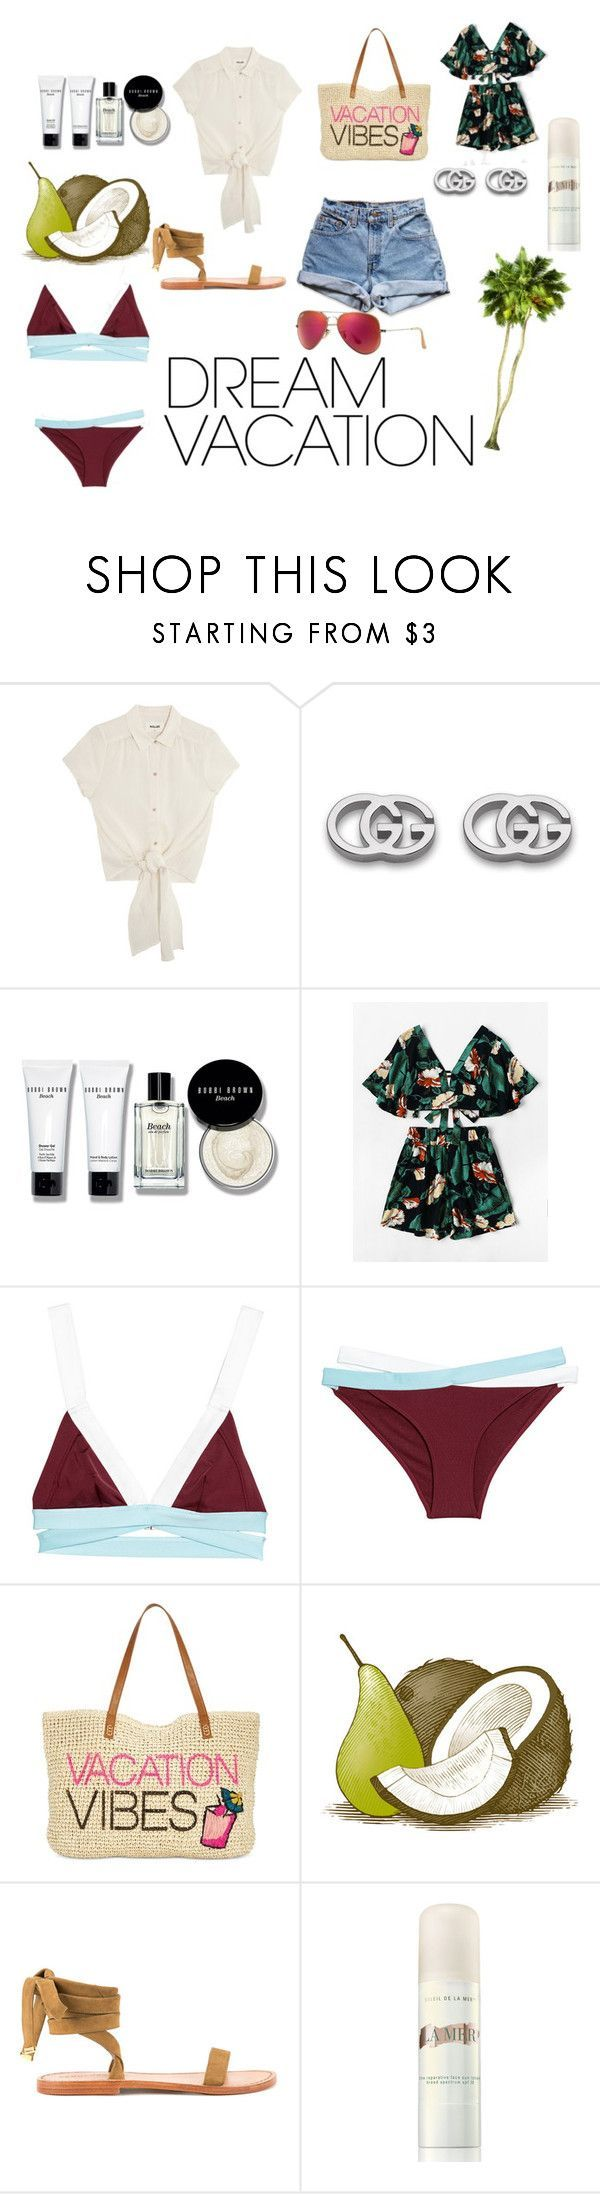 """Vacation In Mexico"" by izabella-belski ❤ liked on Polyvore featuring Levi's, Gucci, Bobbi Brown Cosmetics, INC International Concepts, Dsquared2, La Mer and Ray-Ban #vacationoutfitsmexico"